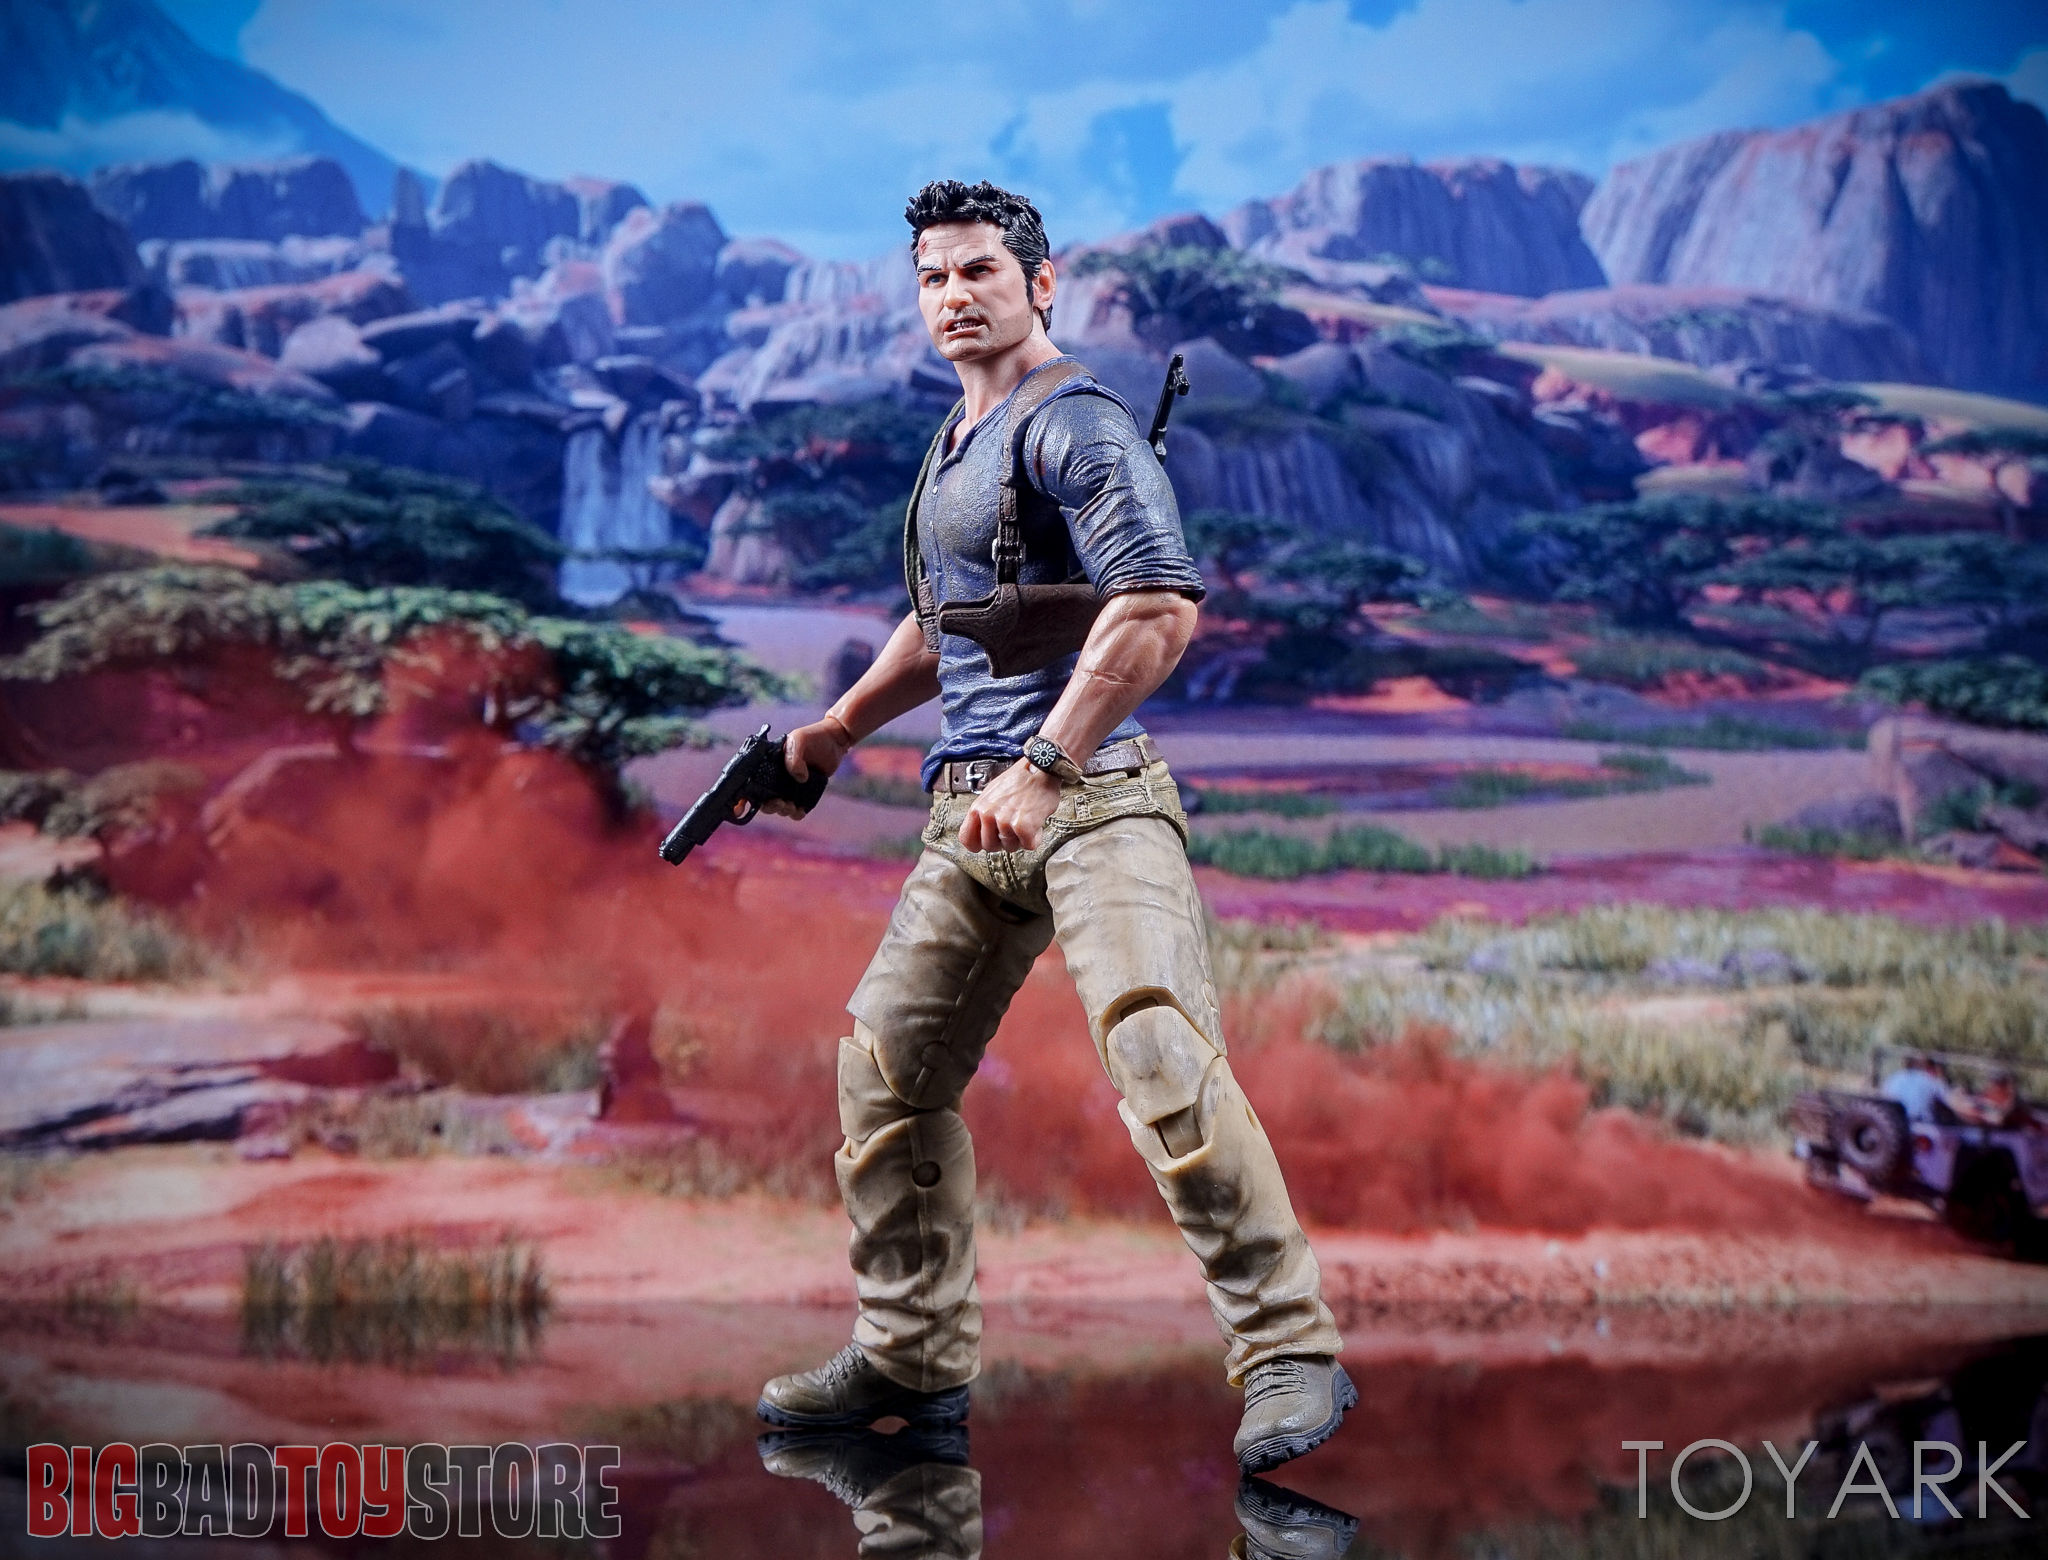 http://news.toyark.com/wp-content/uploads/sites/4/2016/09/NECA-Uncharted-4-Nathan-Drake-054.jpg